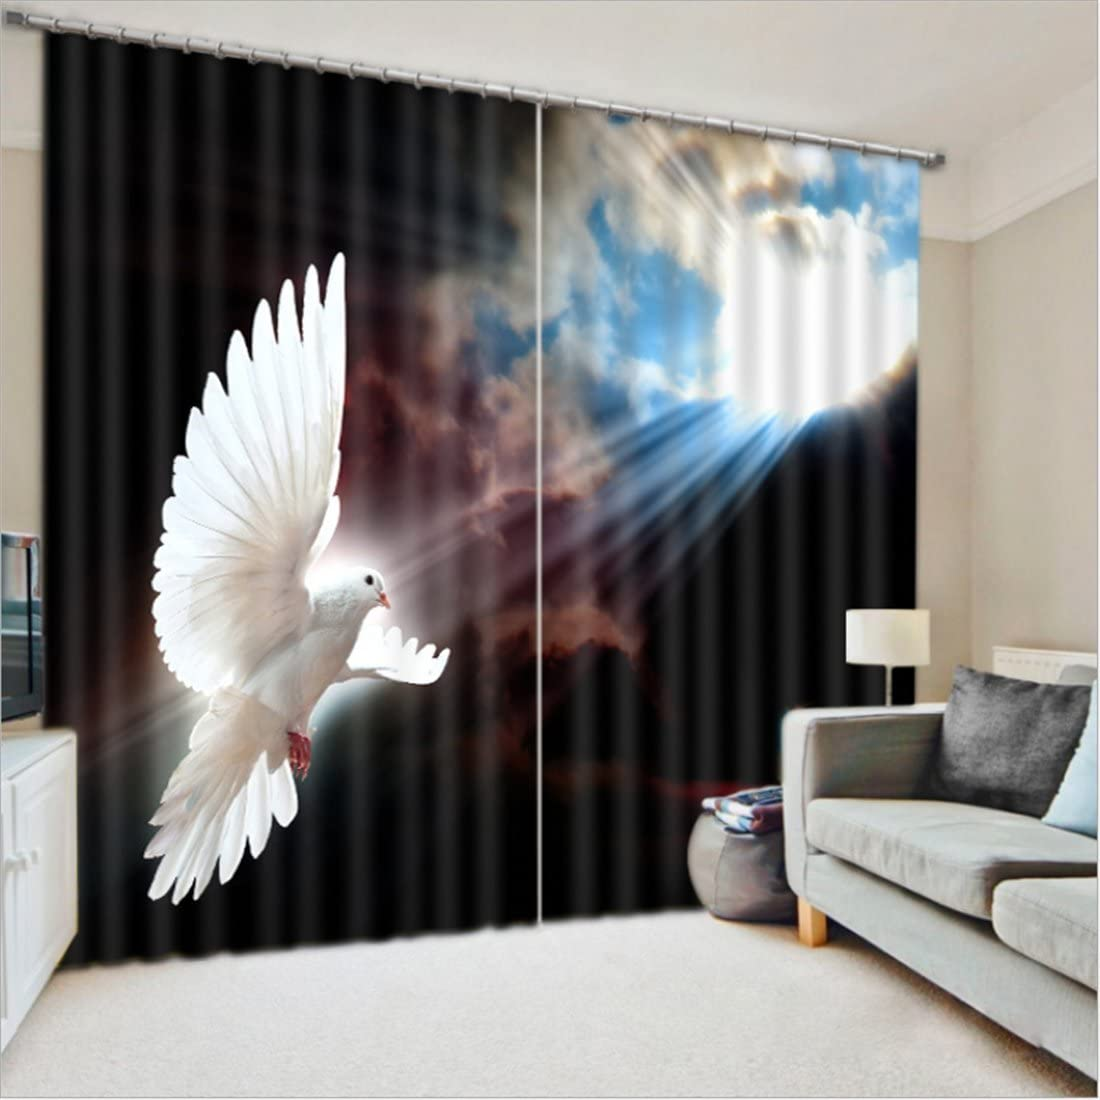 LB Room Darkening Thermal Insulated Blackout Curtains for Bedroom Living Room,The Dancing Dove of Peace 2 Panels Noise Reducing Window Treatment 3D Window Drapes,56 Inch Width by 65 Inch Length